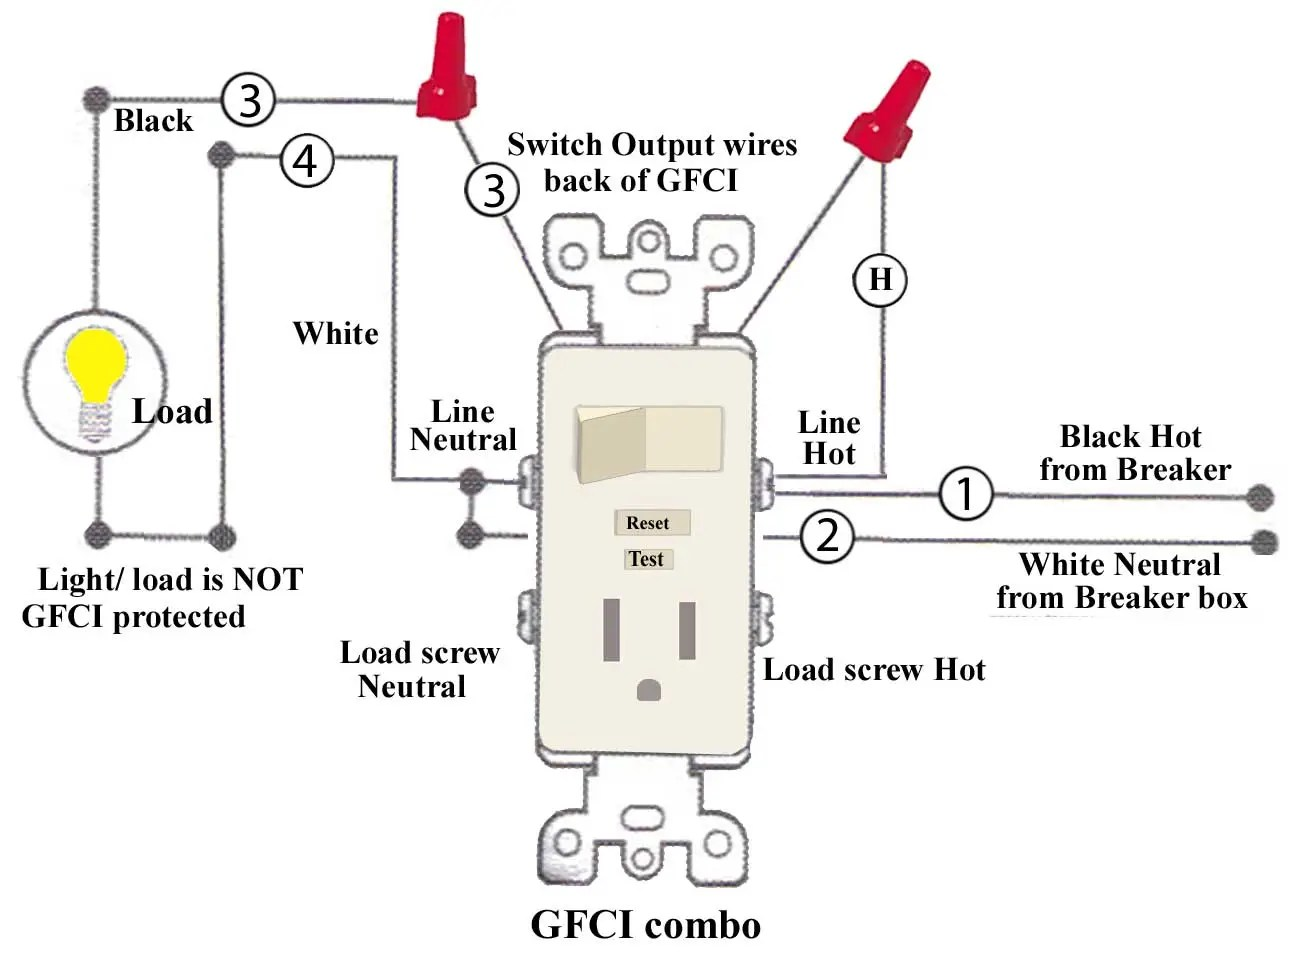 hight resolution of single gfci outlet wiring wiring diagrams series gfci outlet wiring 110v gfci wiring diagram wiring diagrams